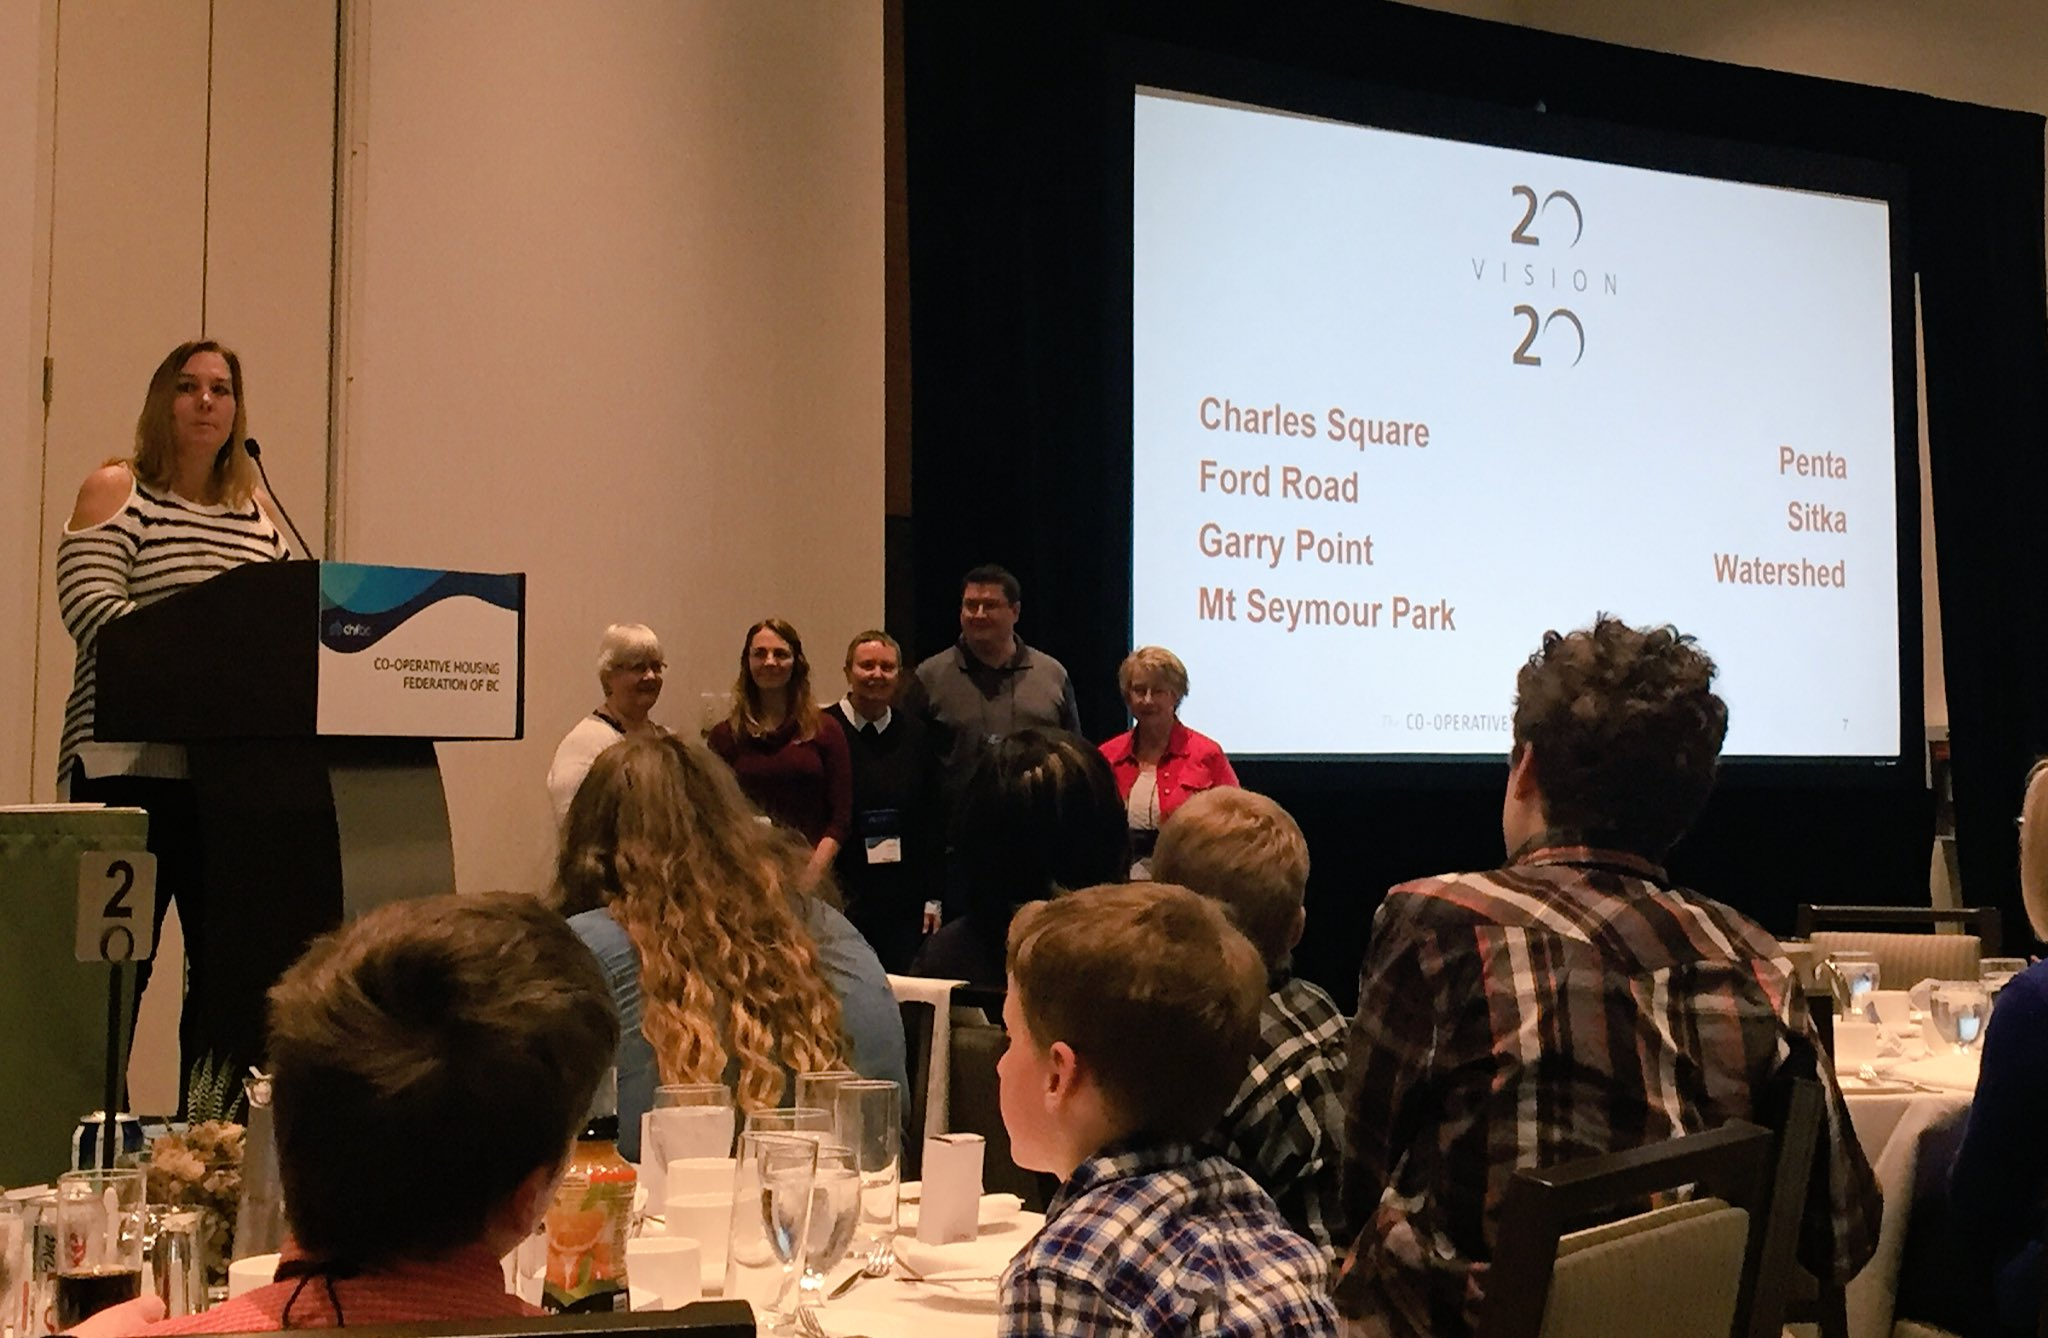 Congratulations to these 20/20 Vision #Coops! Learn more: https://t.co/eELEMm2JSz @CHFCanada #strongercommunities https://t.co/yRkcvdMorB